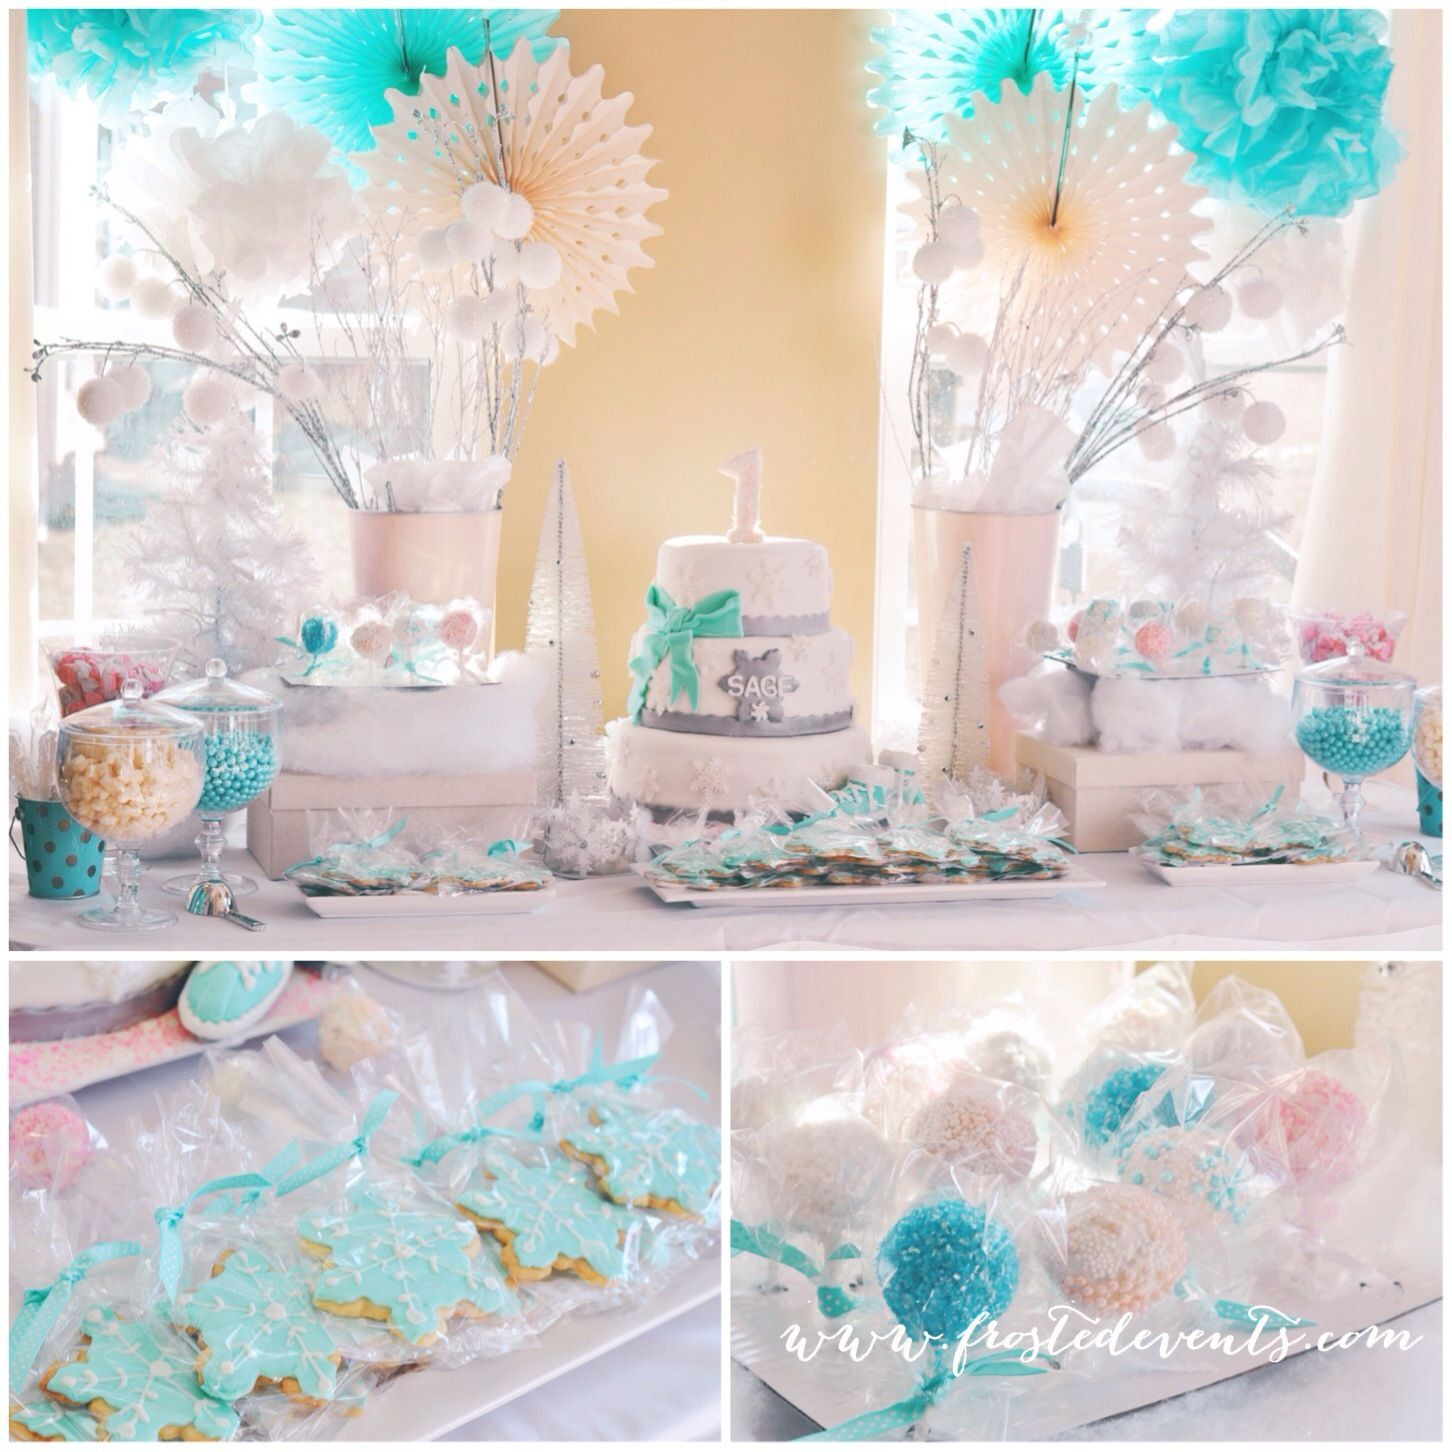 Winter Birthday Party Ideas For 1 Year Old  Winter Wonderland First Birthday Party by Frosted Events